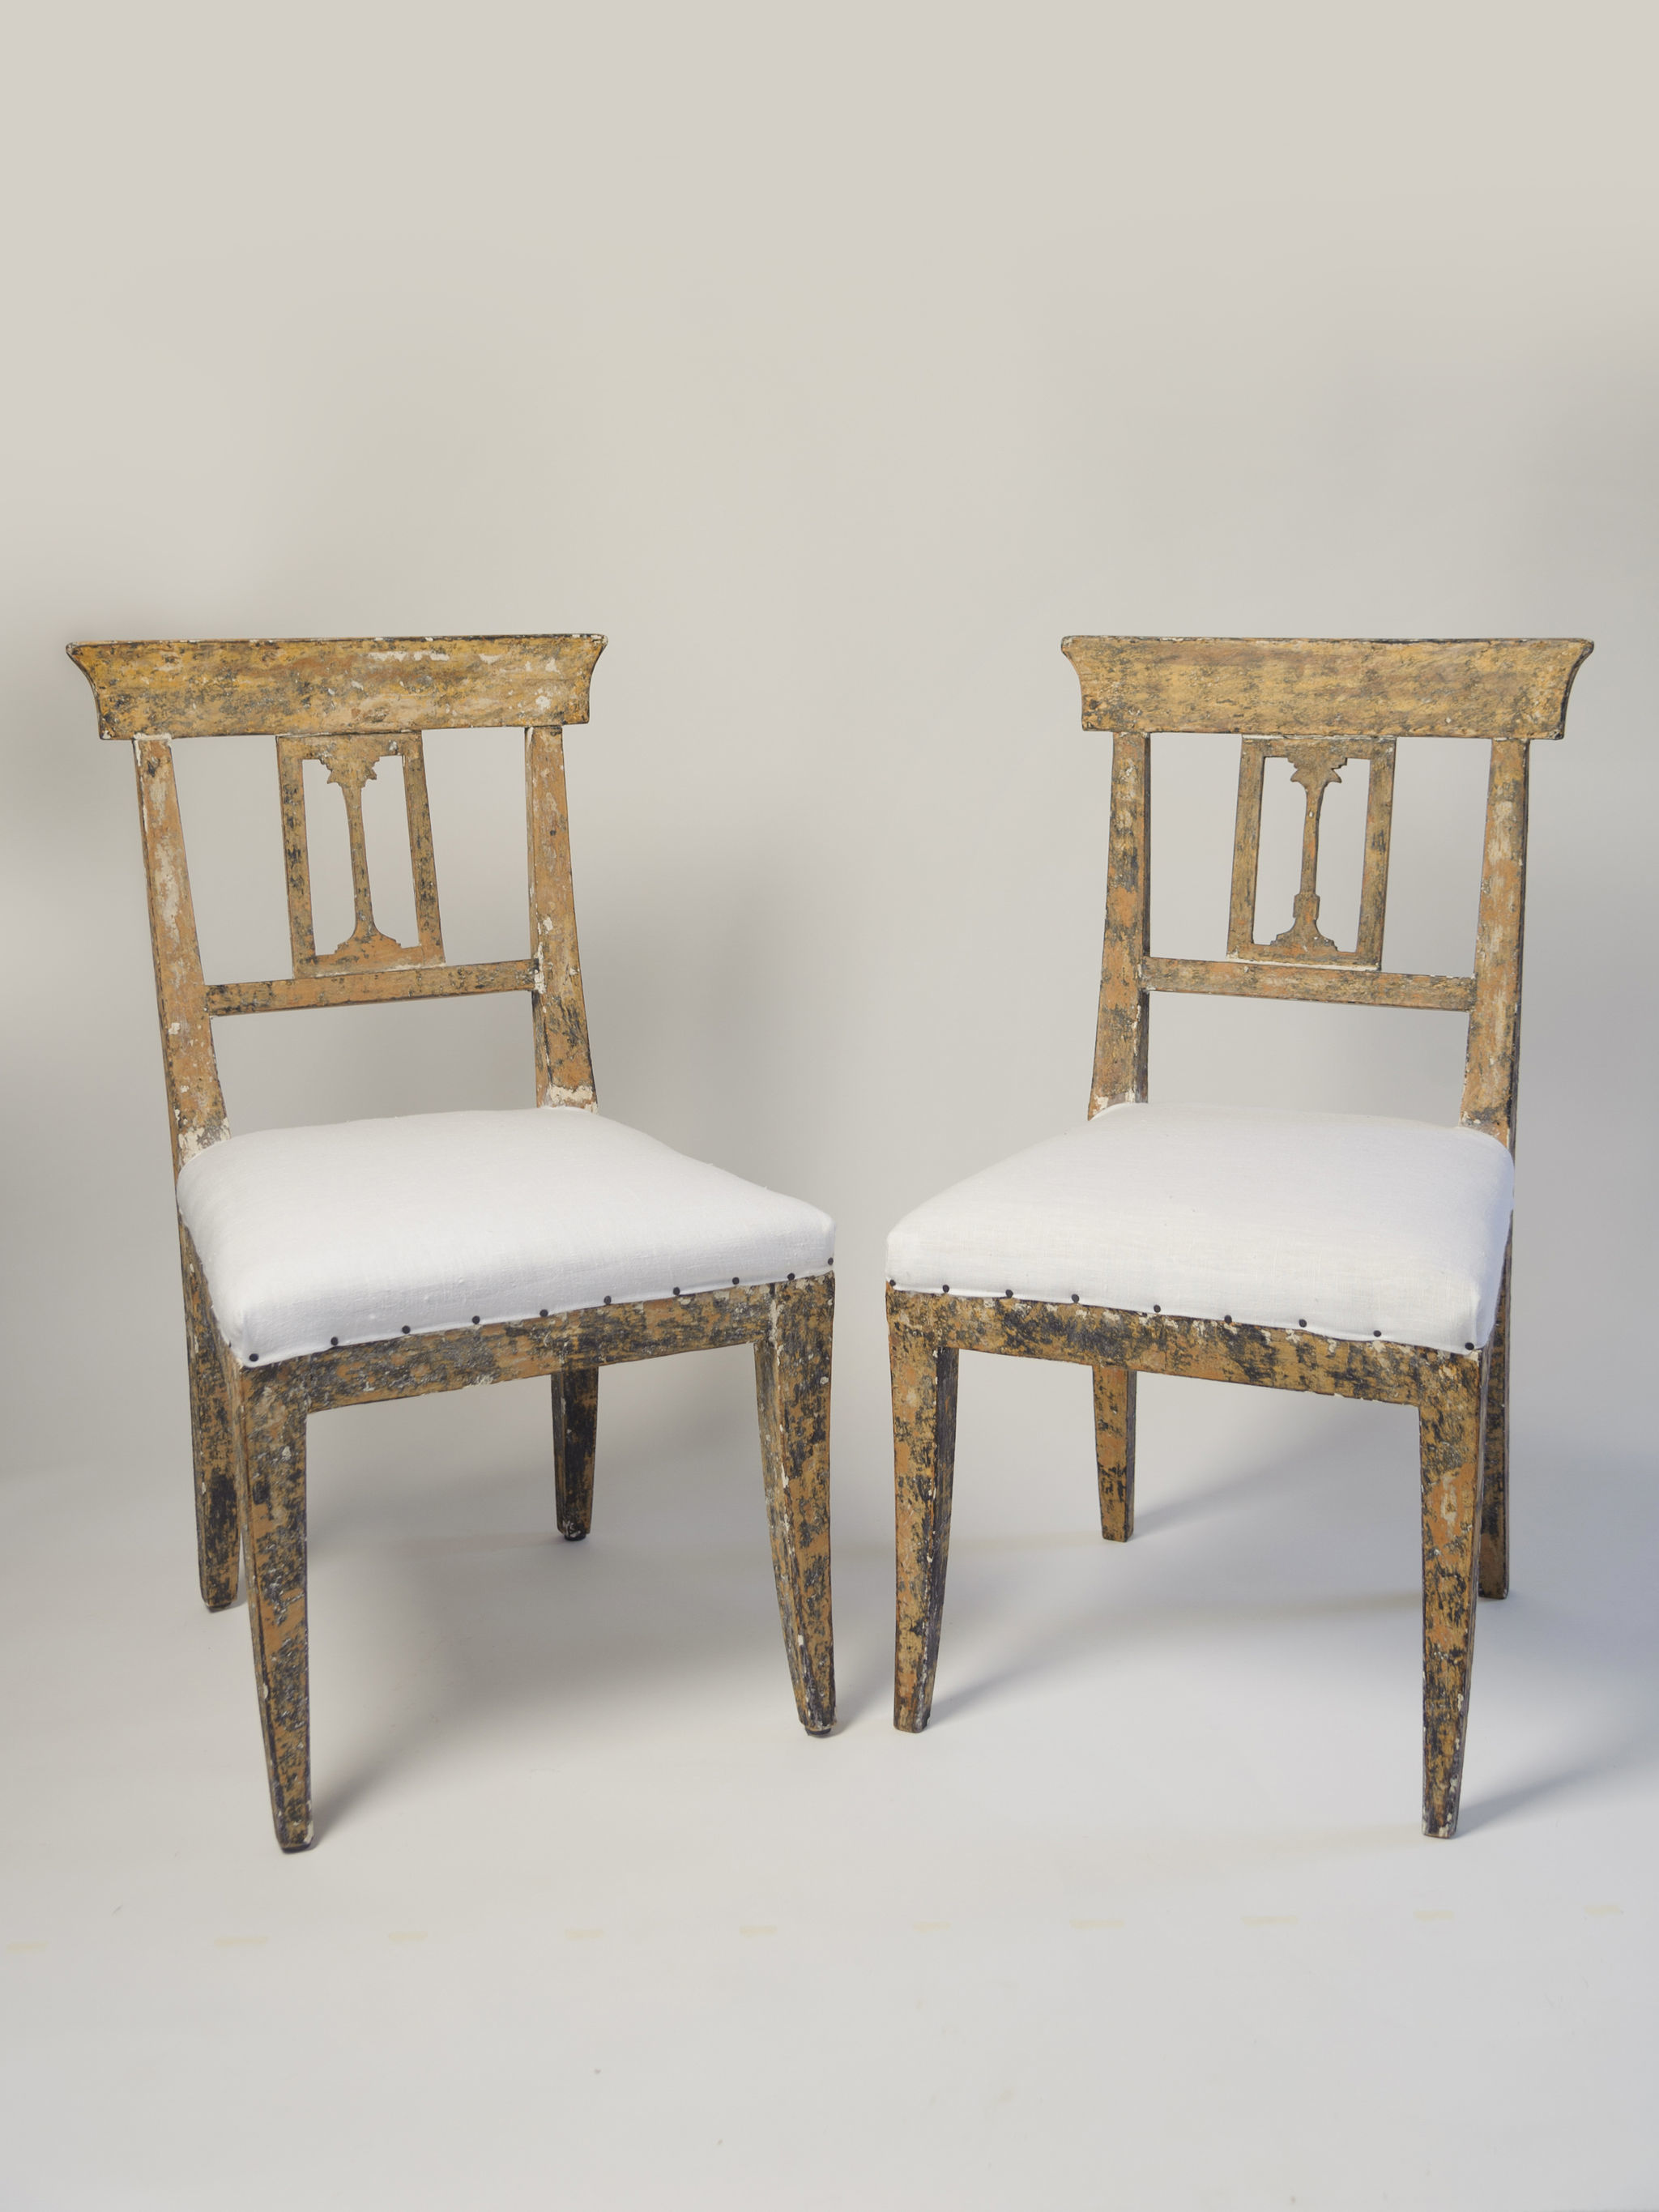 Antique Swedish Gustavian Chairs Vinterior